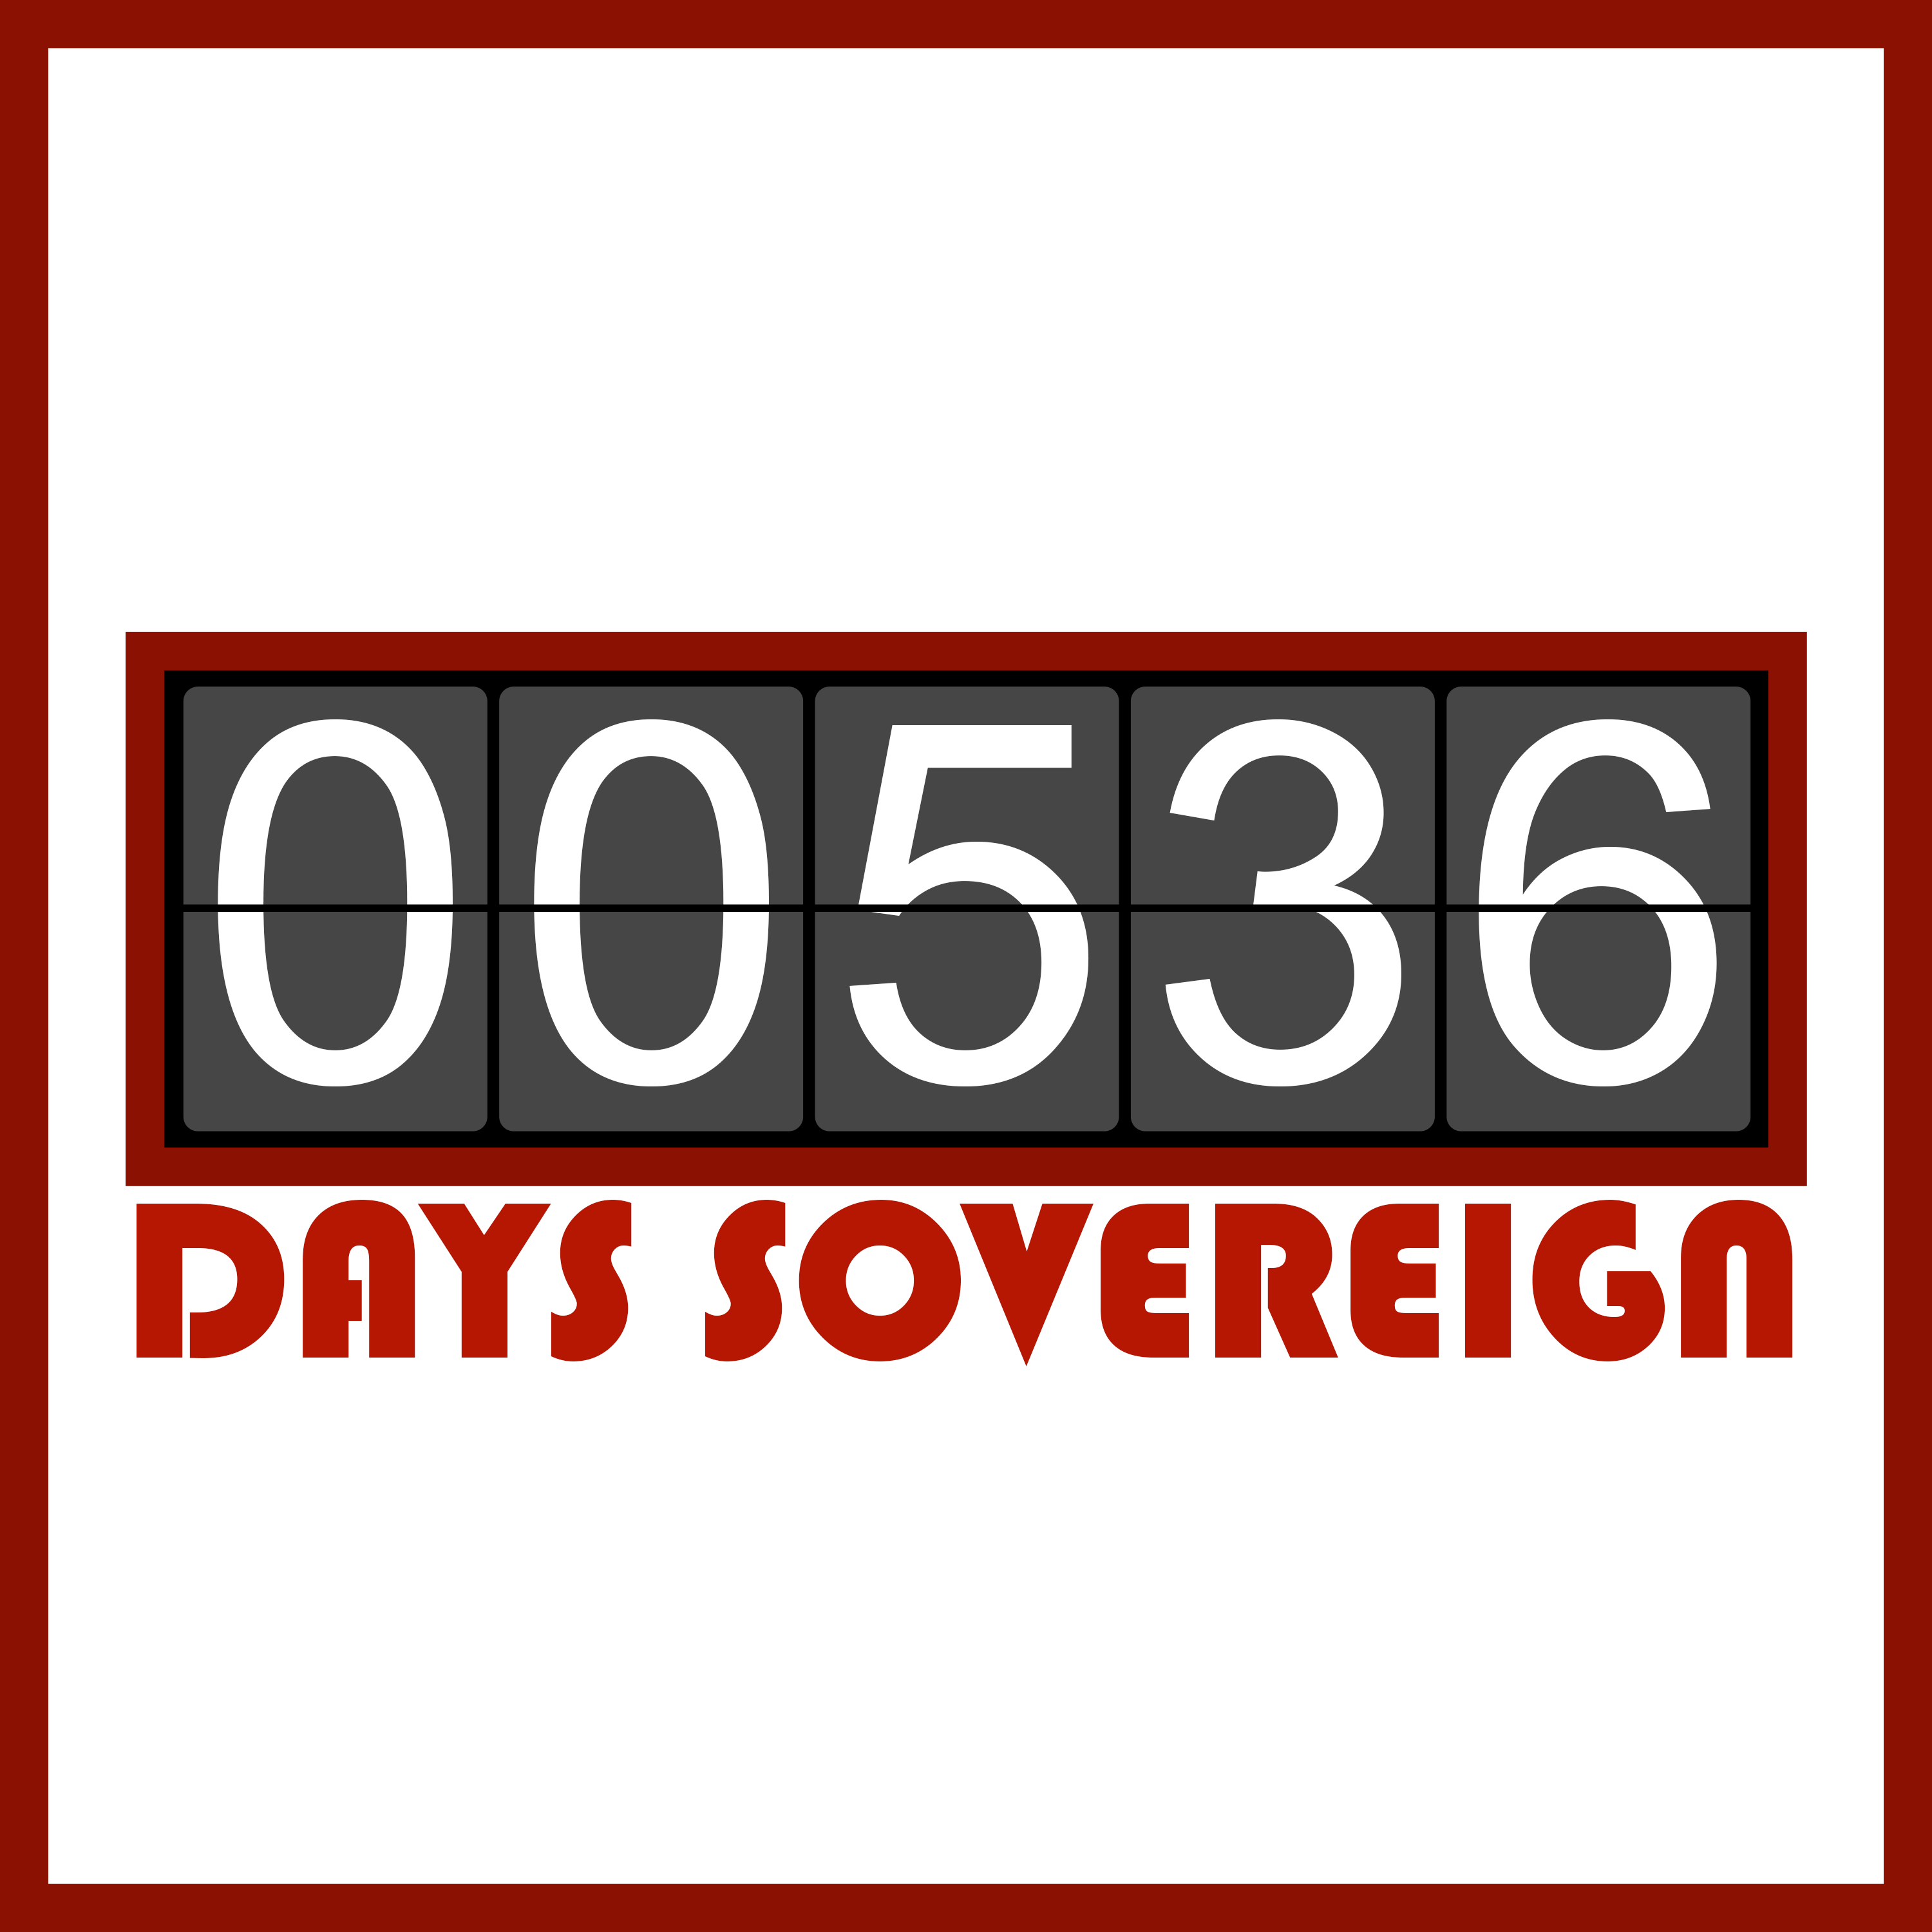 DAY 536 - Foreign Advice